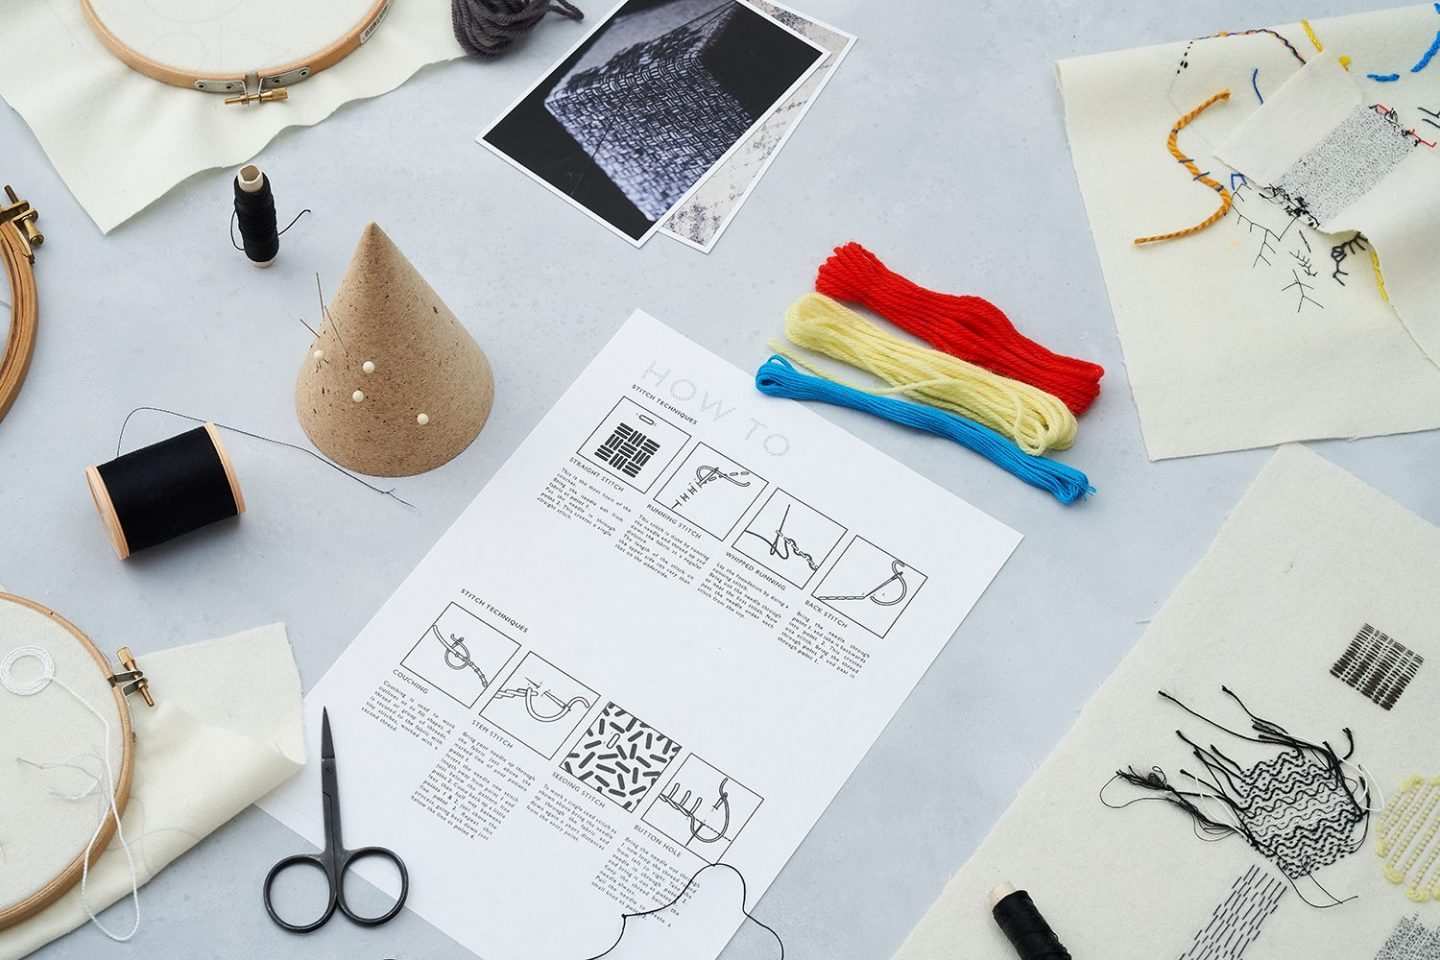 Photograph shows bundles of thread, an instruction sheet, scissors and material with some hand embroidered patterns